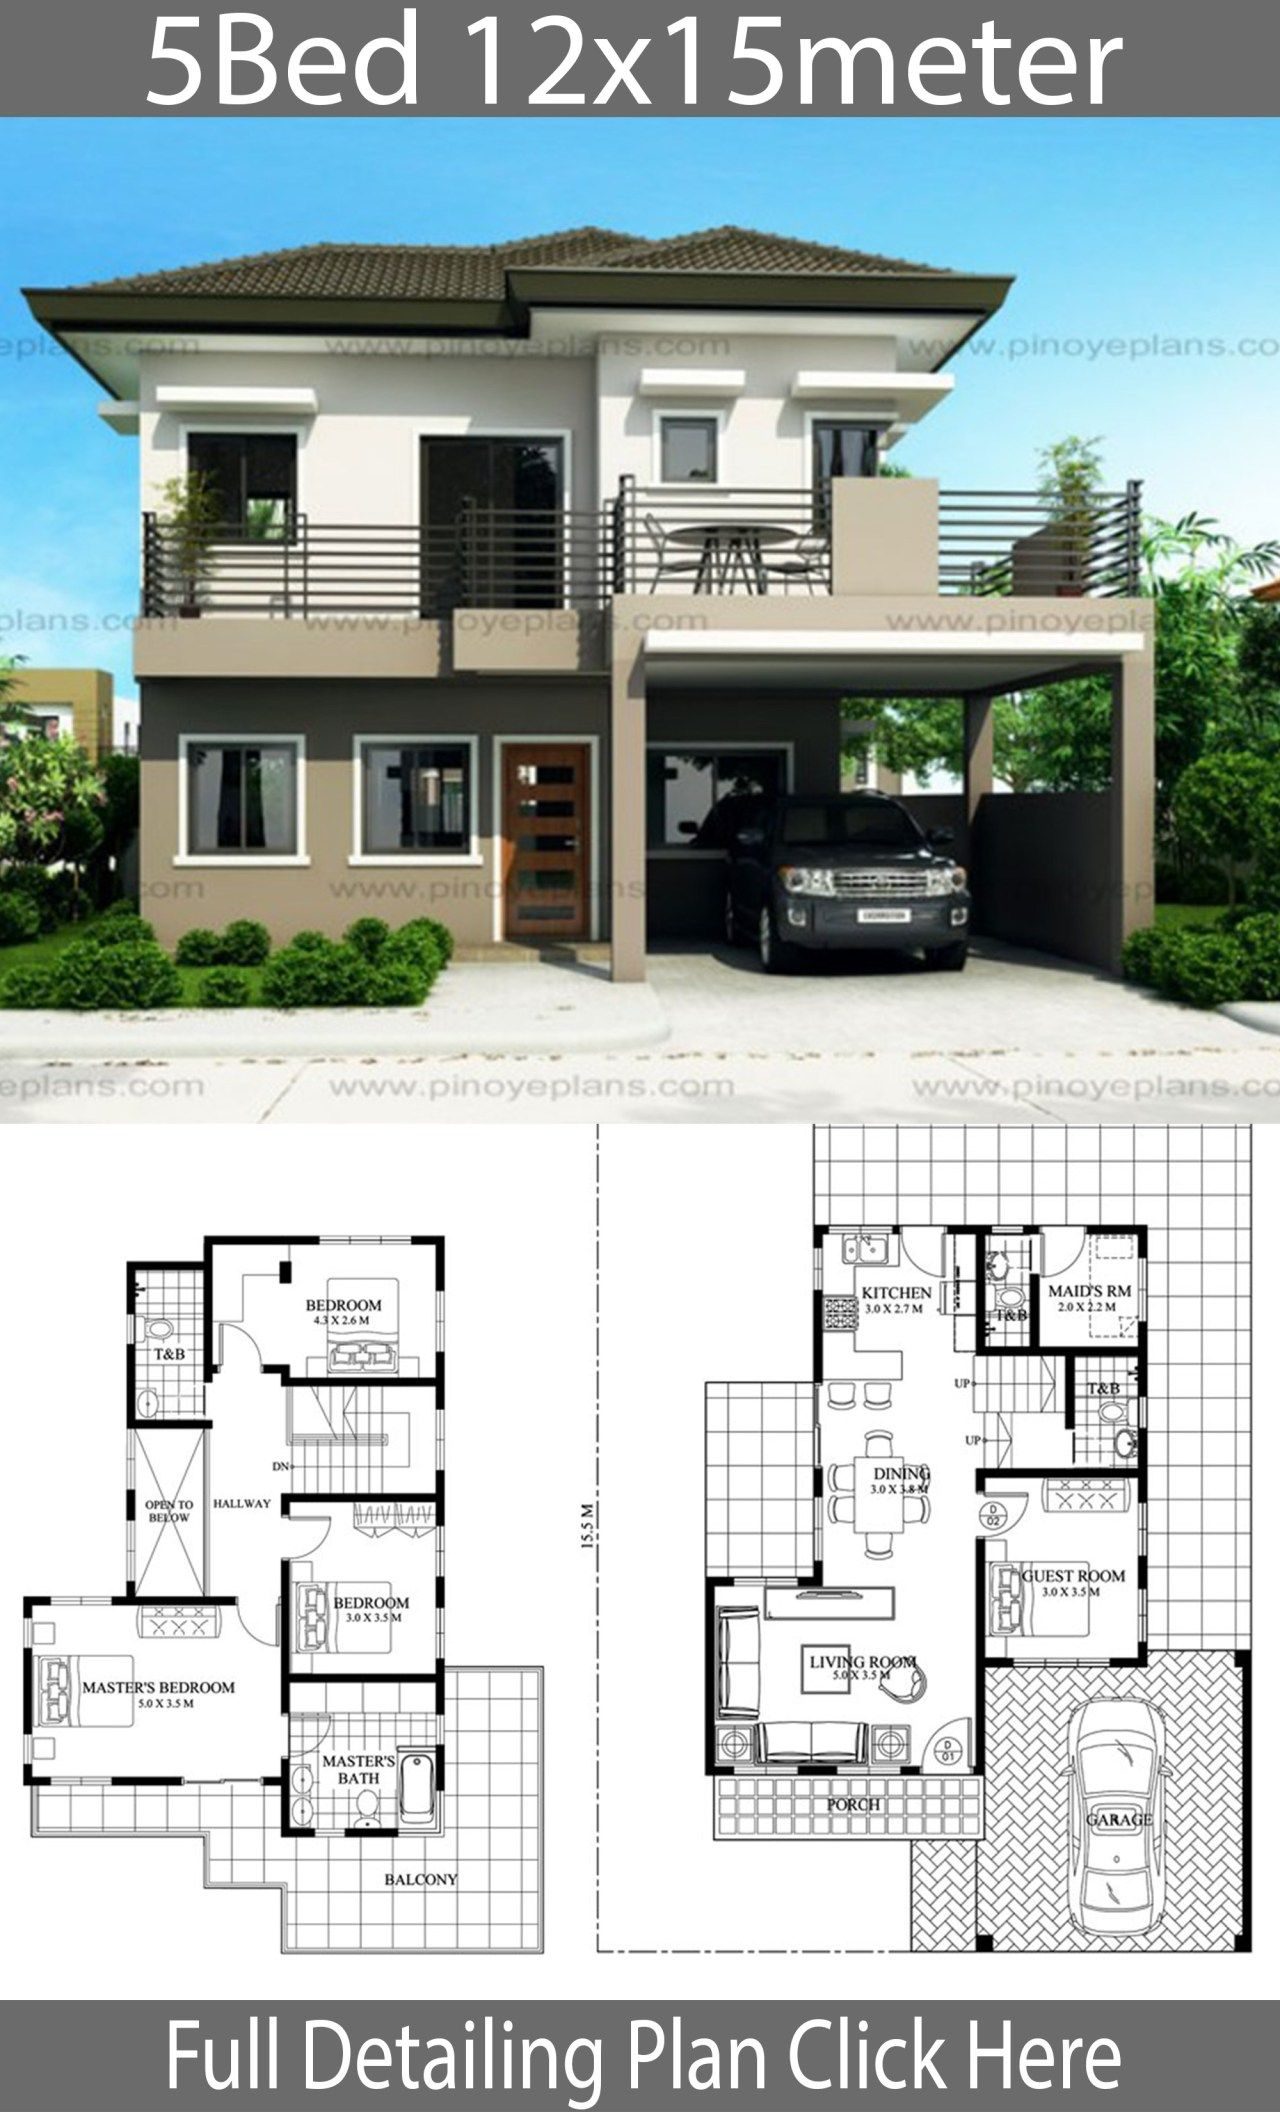 House Design 12x15m With 5 Bedrooms Home Ideas Duplex House Design Bungalow House Plans House Floor Design